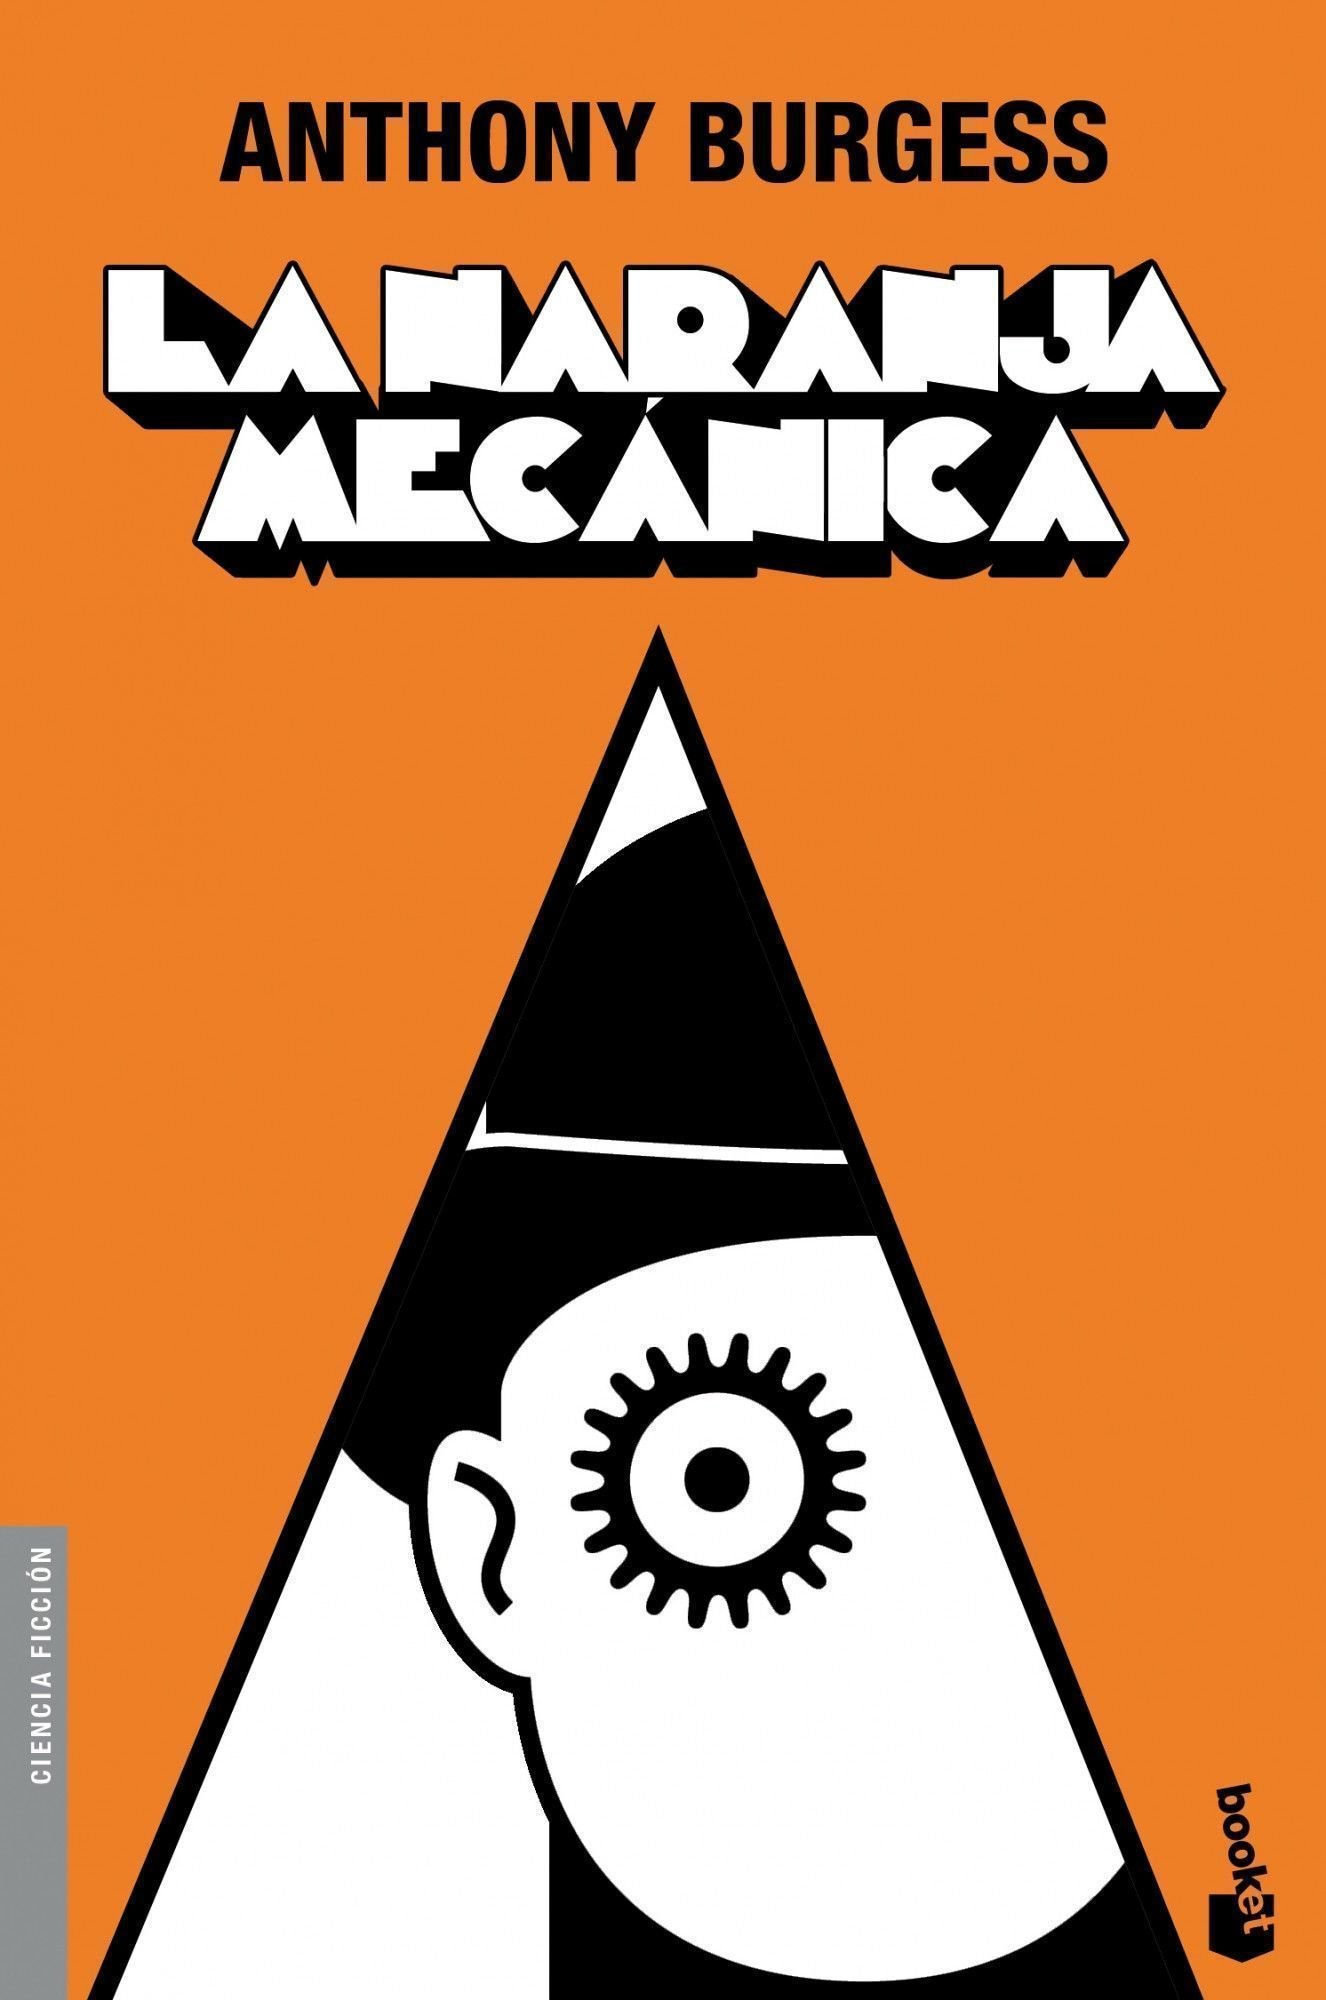 La naranja mecanica (Spanish Edition): Anthony Burgess: 9788445078822: Amazon.com: Books